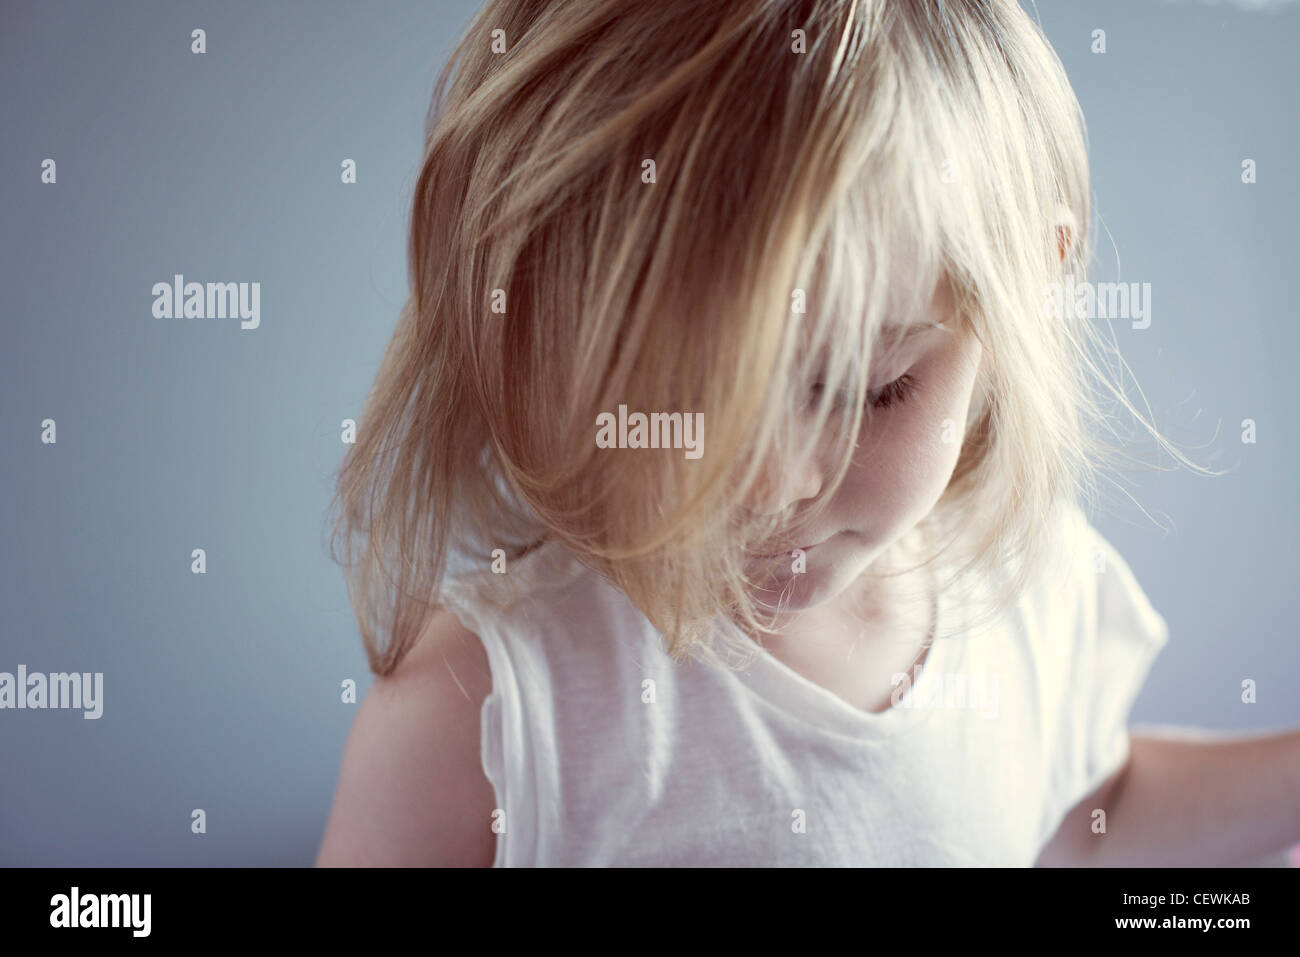 Little girl looking down, hair covering face - Stock Image